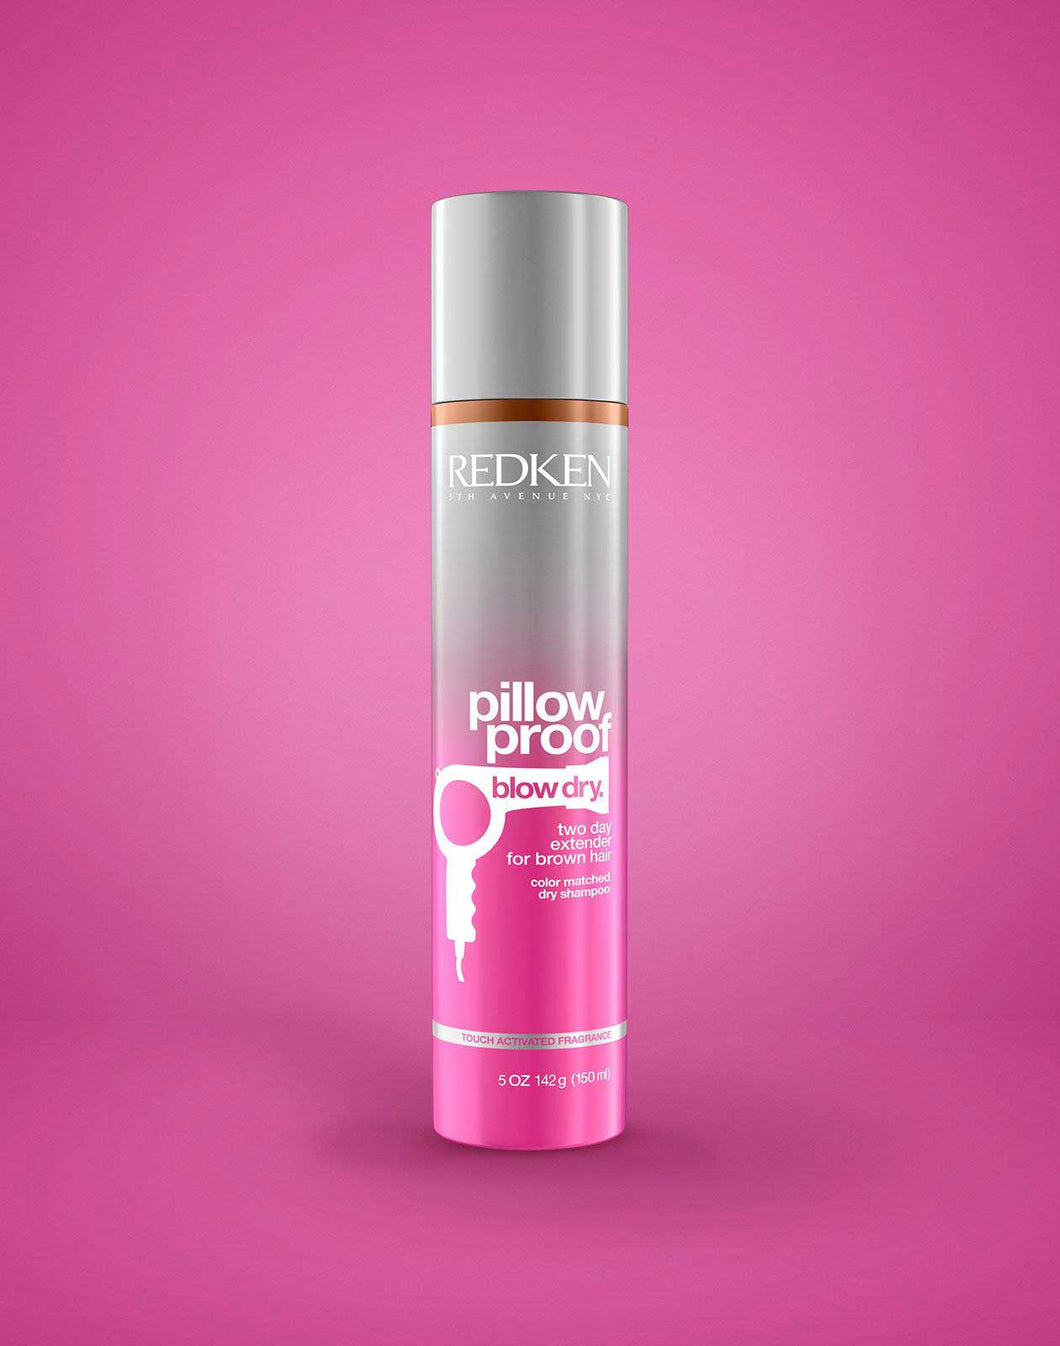 PILLOW PROOF TWO DAY EXTENDER DRY SHAMPOO FOR BROWN HAIR - The Color Studio & Salon